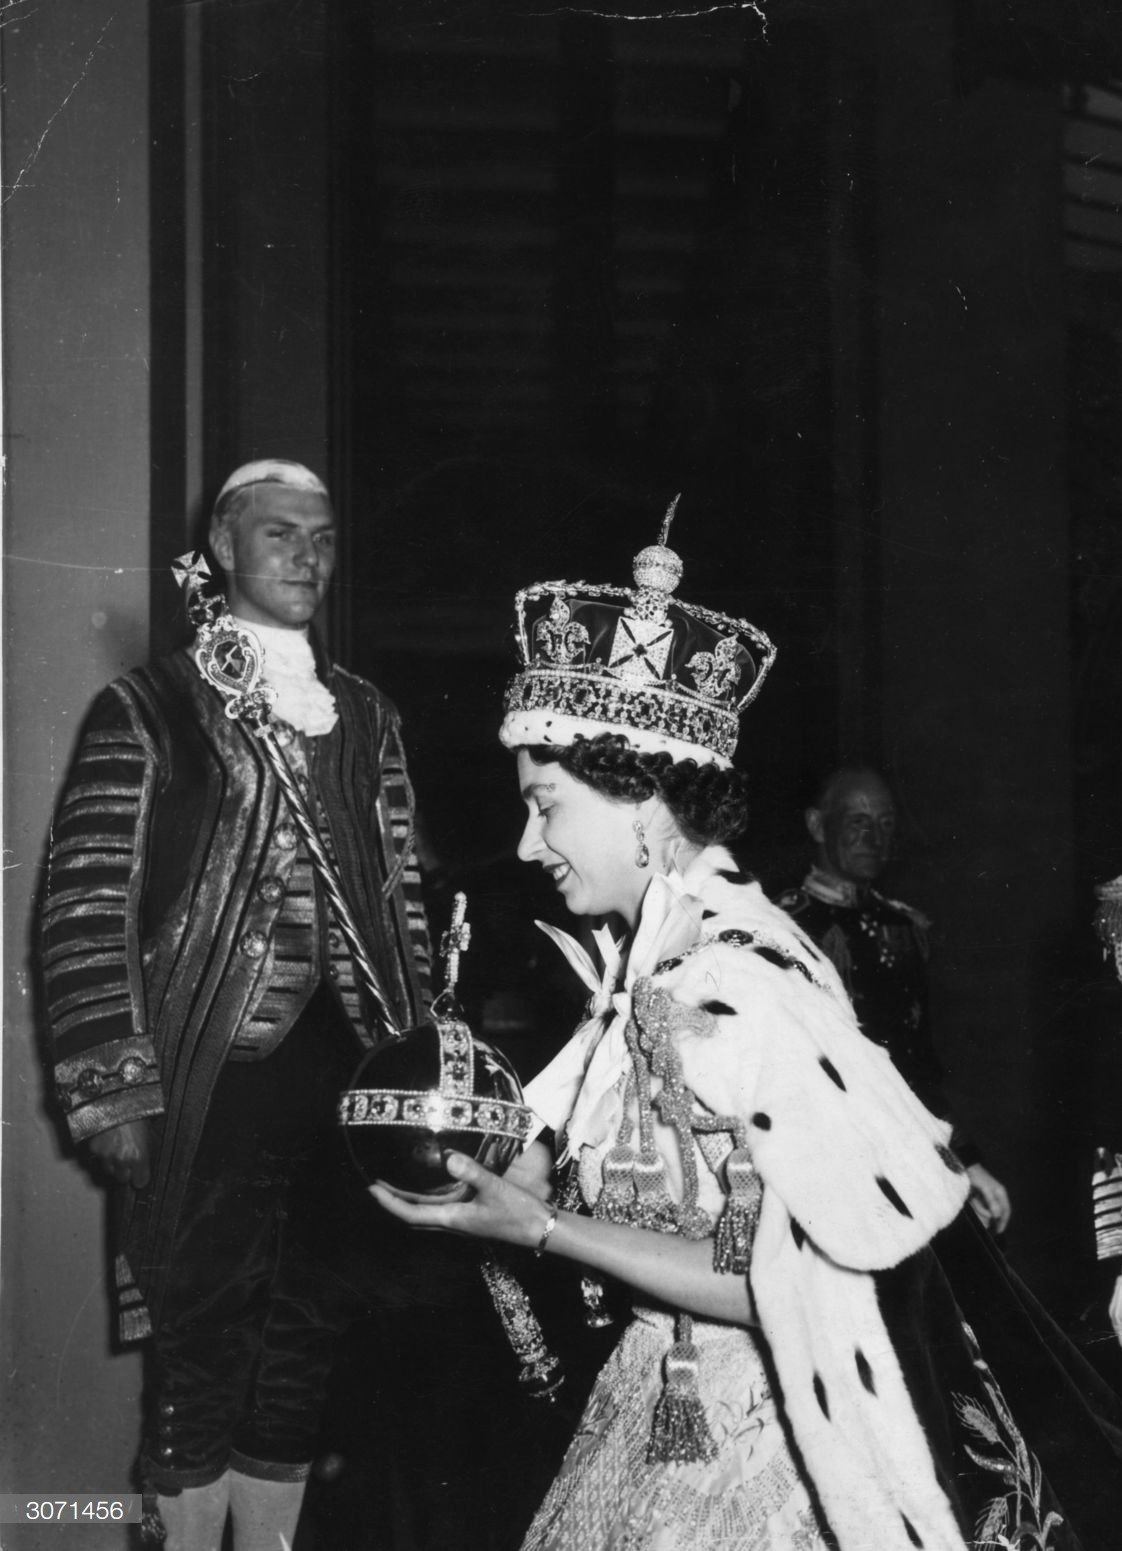 Princess Elizabeth during her 1953 coronation as Queen of the United Kingdom. | Photo: Alamy Stock Photo